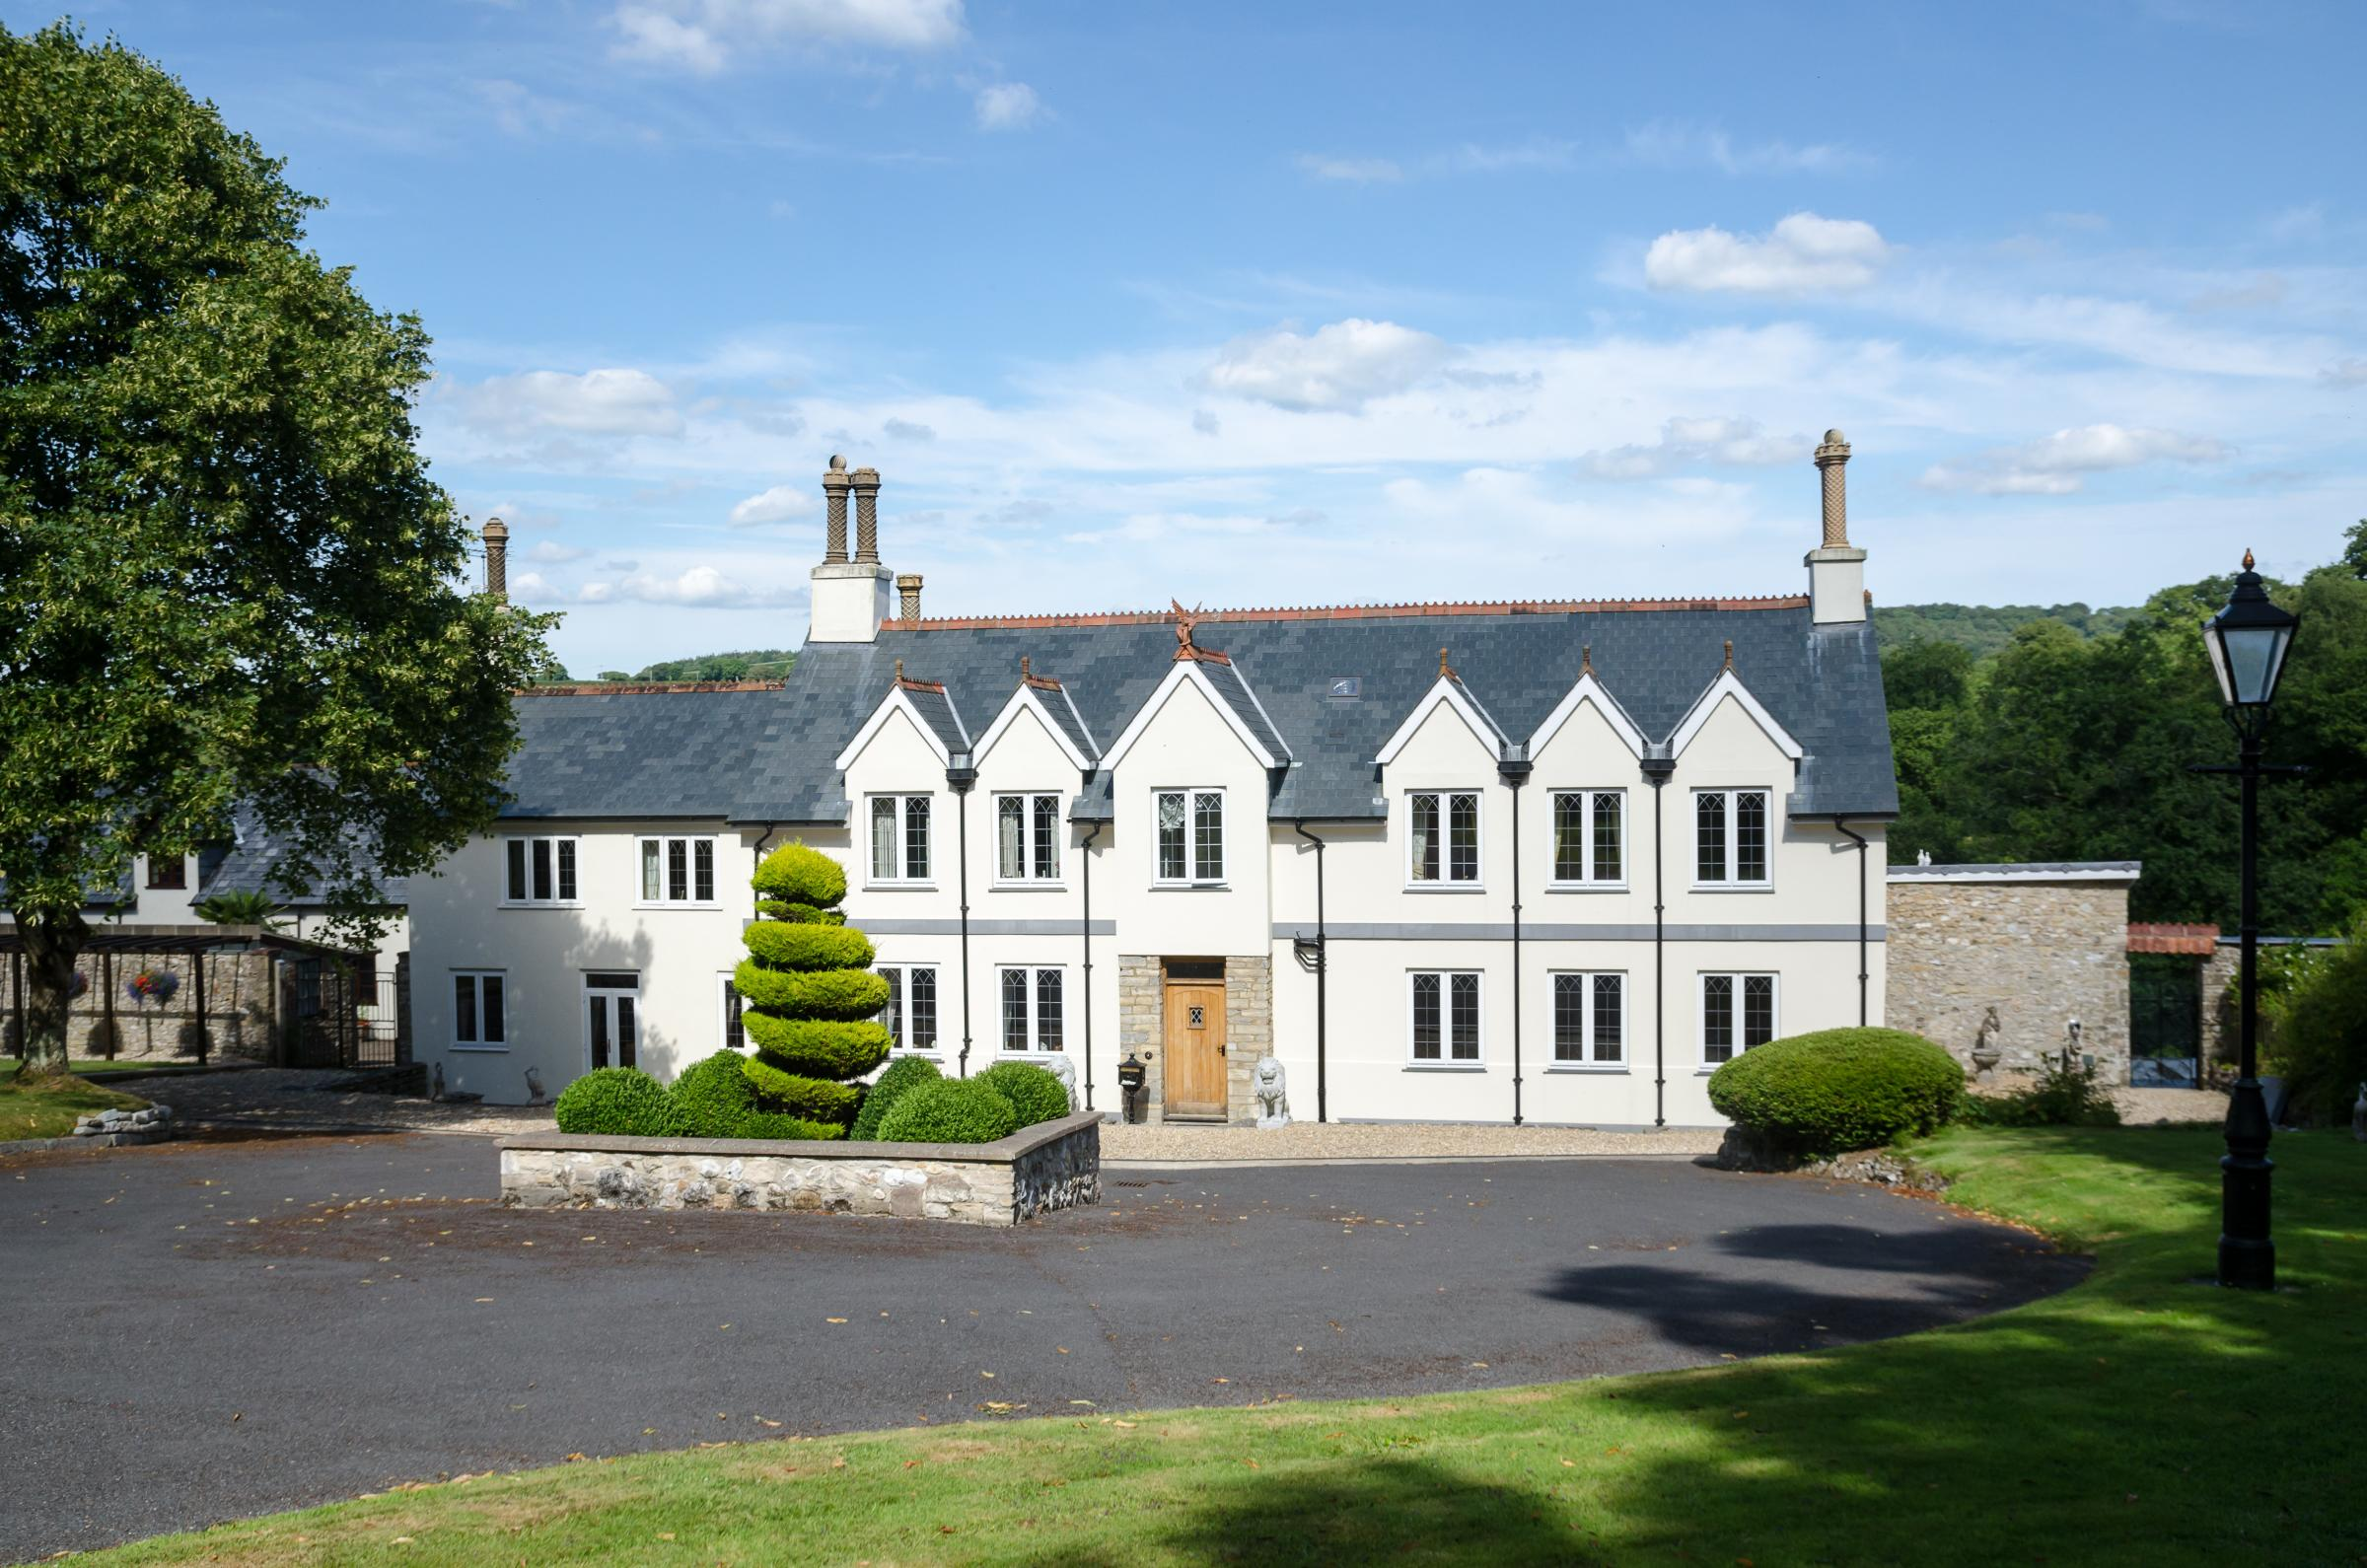 Furzleigh House holiday let near Axminster has been sold